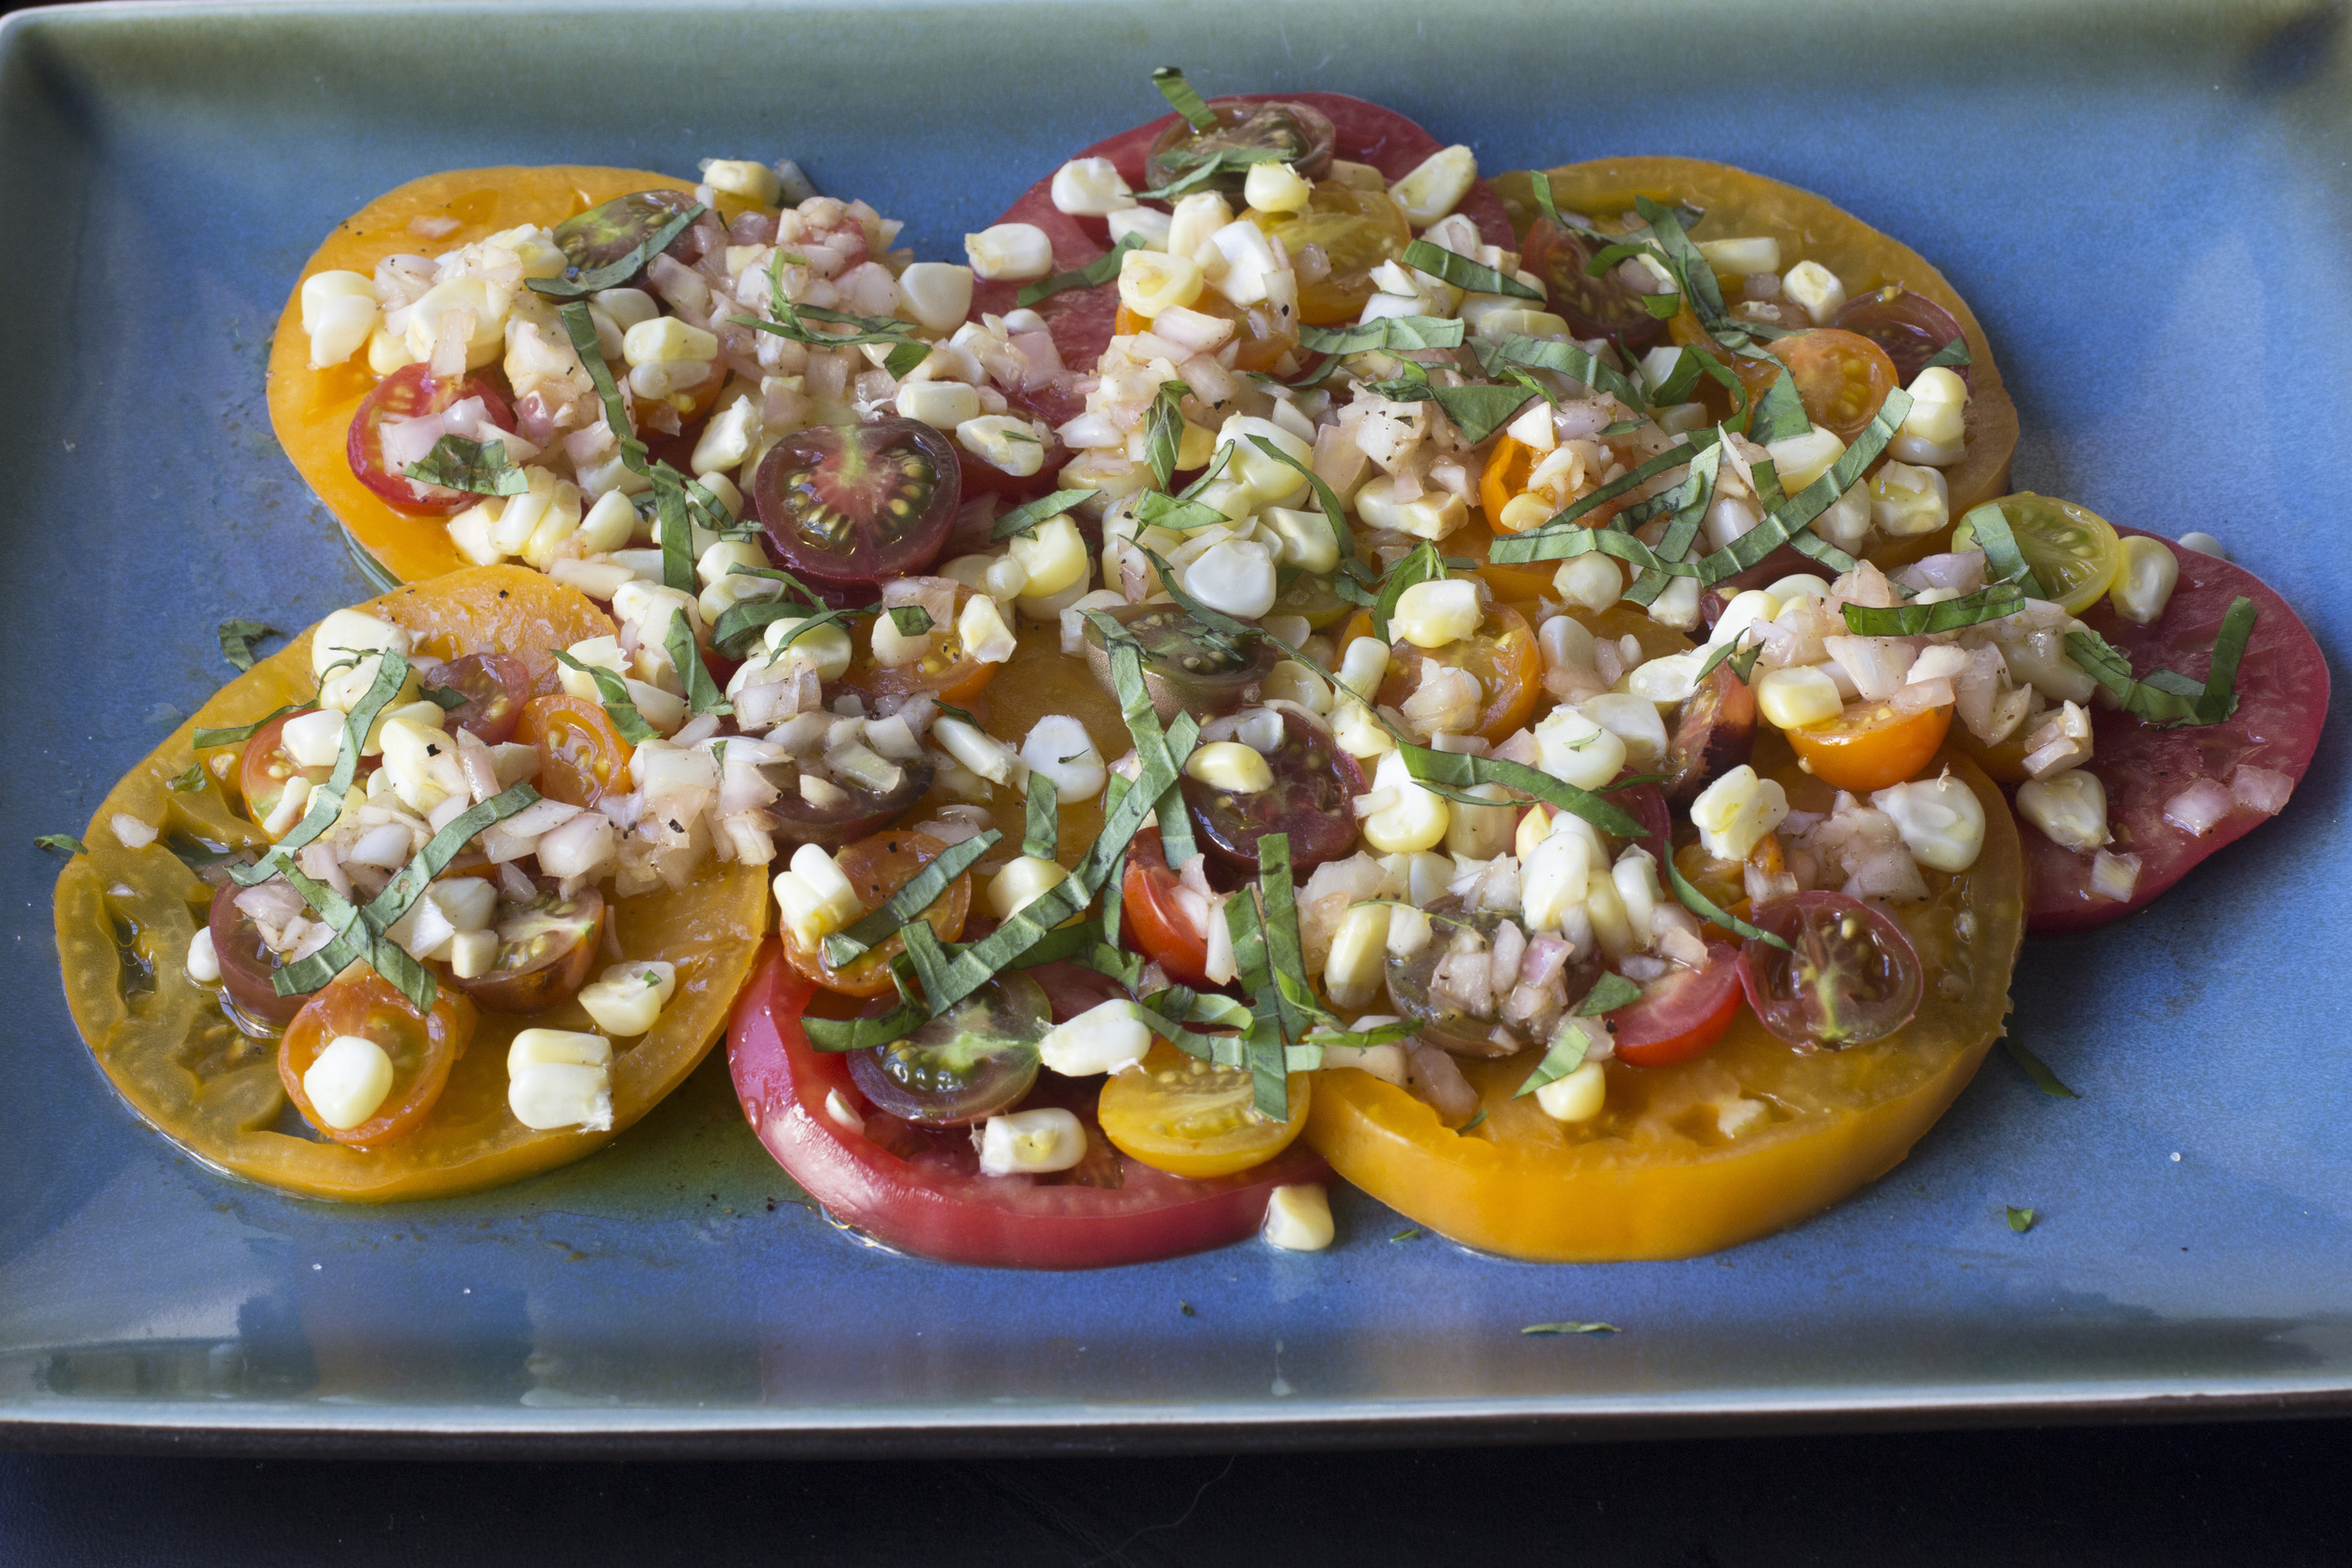 "The tomatoes I used are heirloom tomatoes from the farmer's market, but if you have access to home-grown tomatoes, no matter if they're Better Boy or Brandywine, they will be fantastic in this salad. This recipe is from Molly Wizenberg's latest book   Delancey: A Man, a Woman, a Restaurant, a Marriage .   I like to call it ""Summer on a  Plate"" Salad, since it's pretty much the essence of all that is delicious and colorful this season."